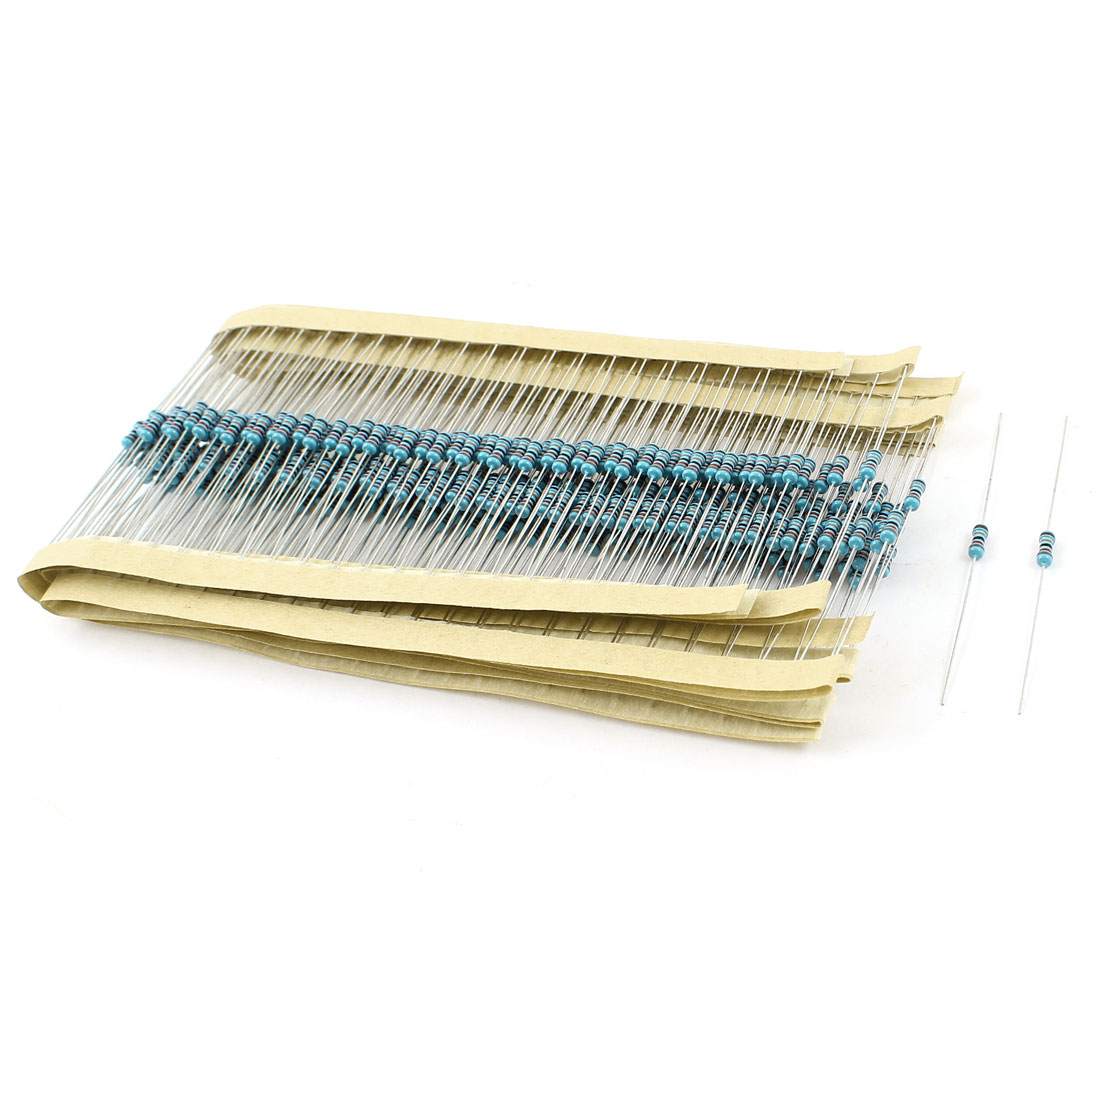 300 Pcs Through Hole 1/4W 1% 820K Ohm Metal Film Resistor 2.2mm x 5.5mm